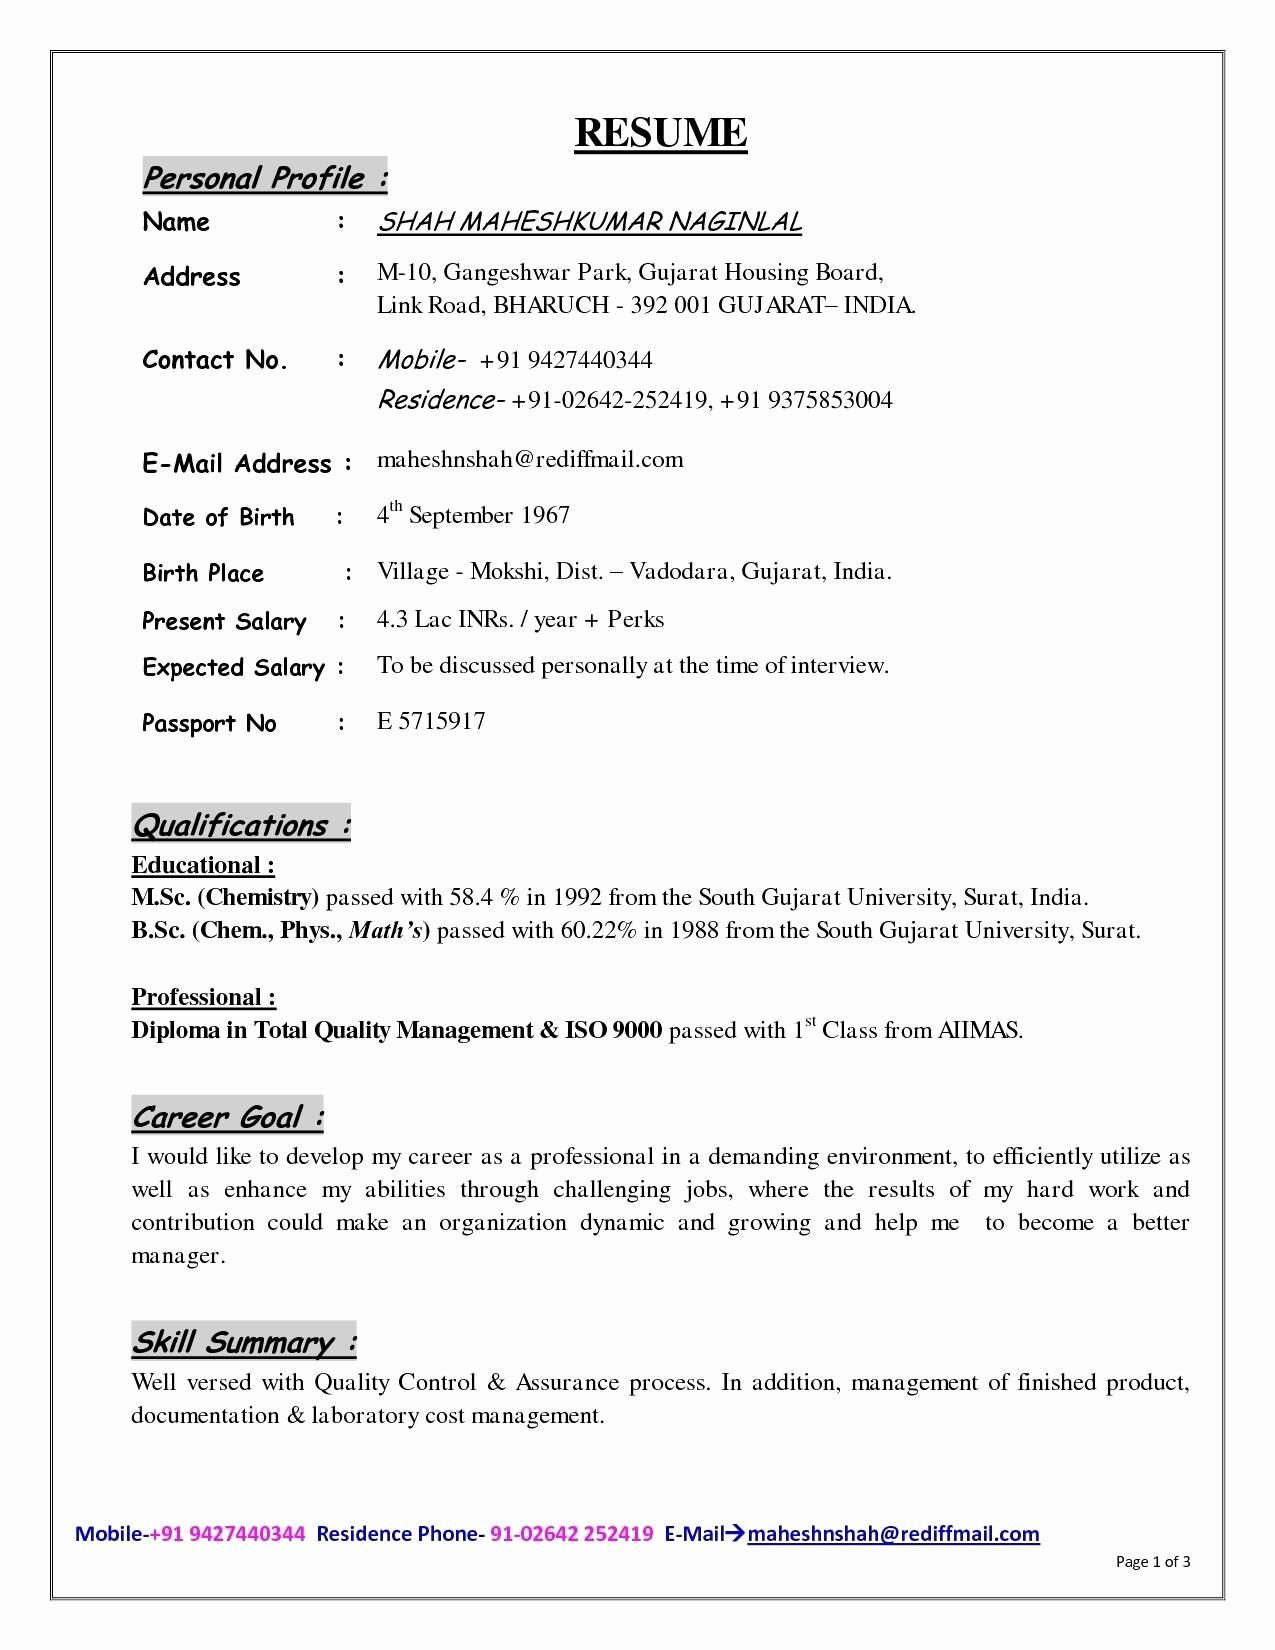 sample resume format for mechanical engineering freshers